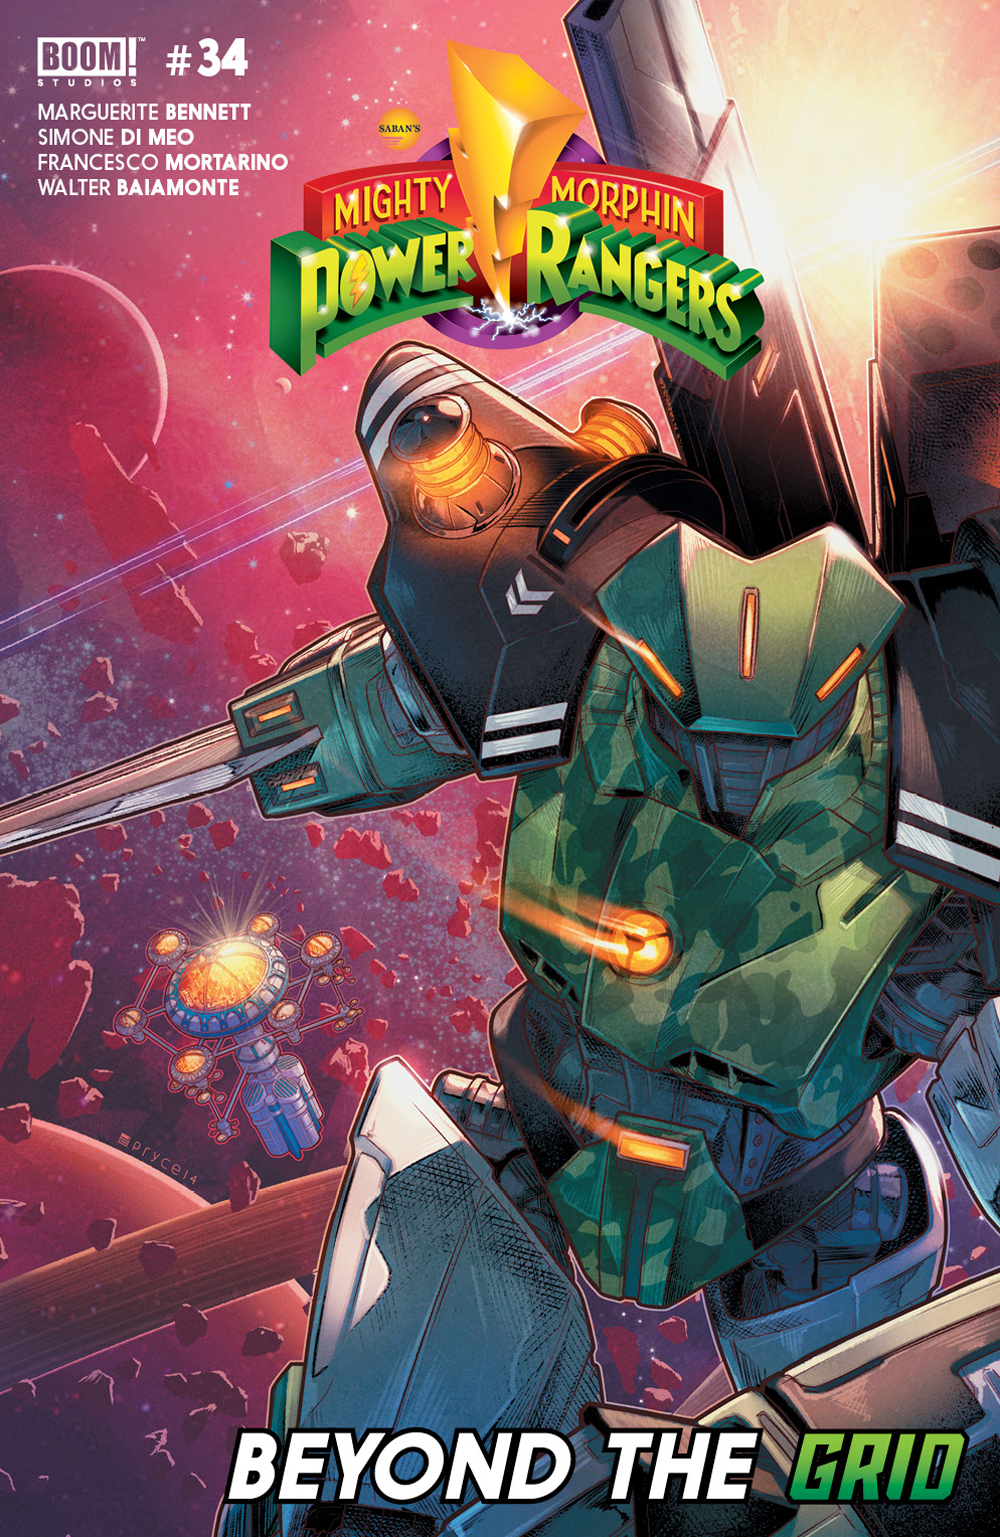 MIGHTY MORPHIN POWER RANGERS #34 MAIN